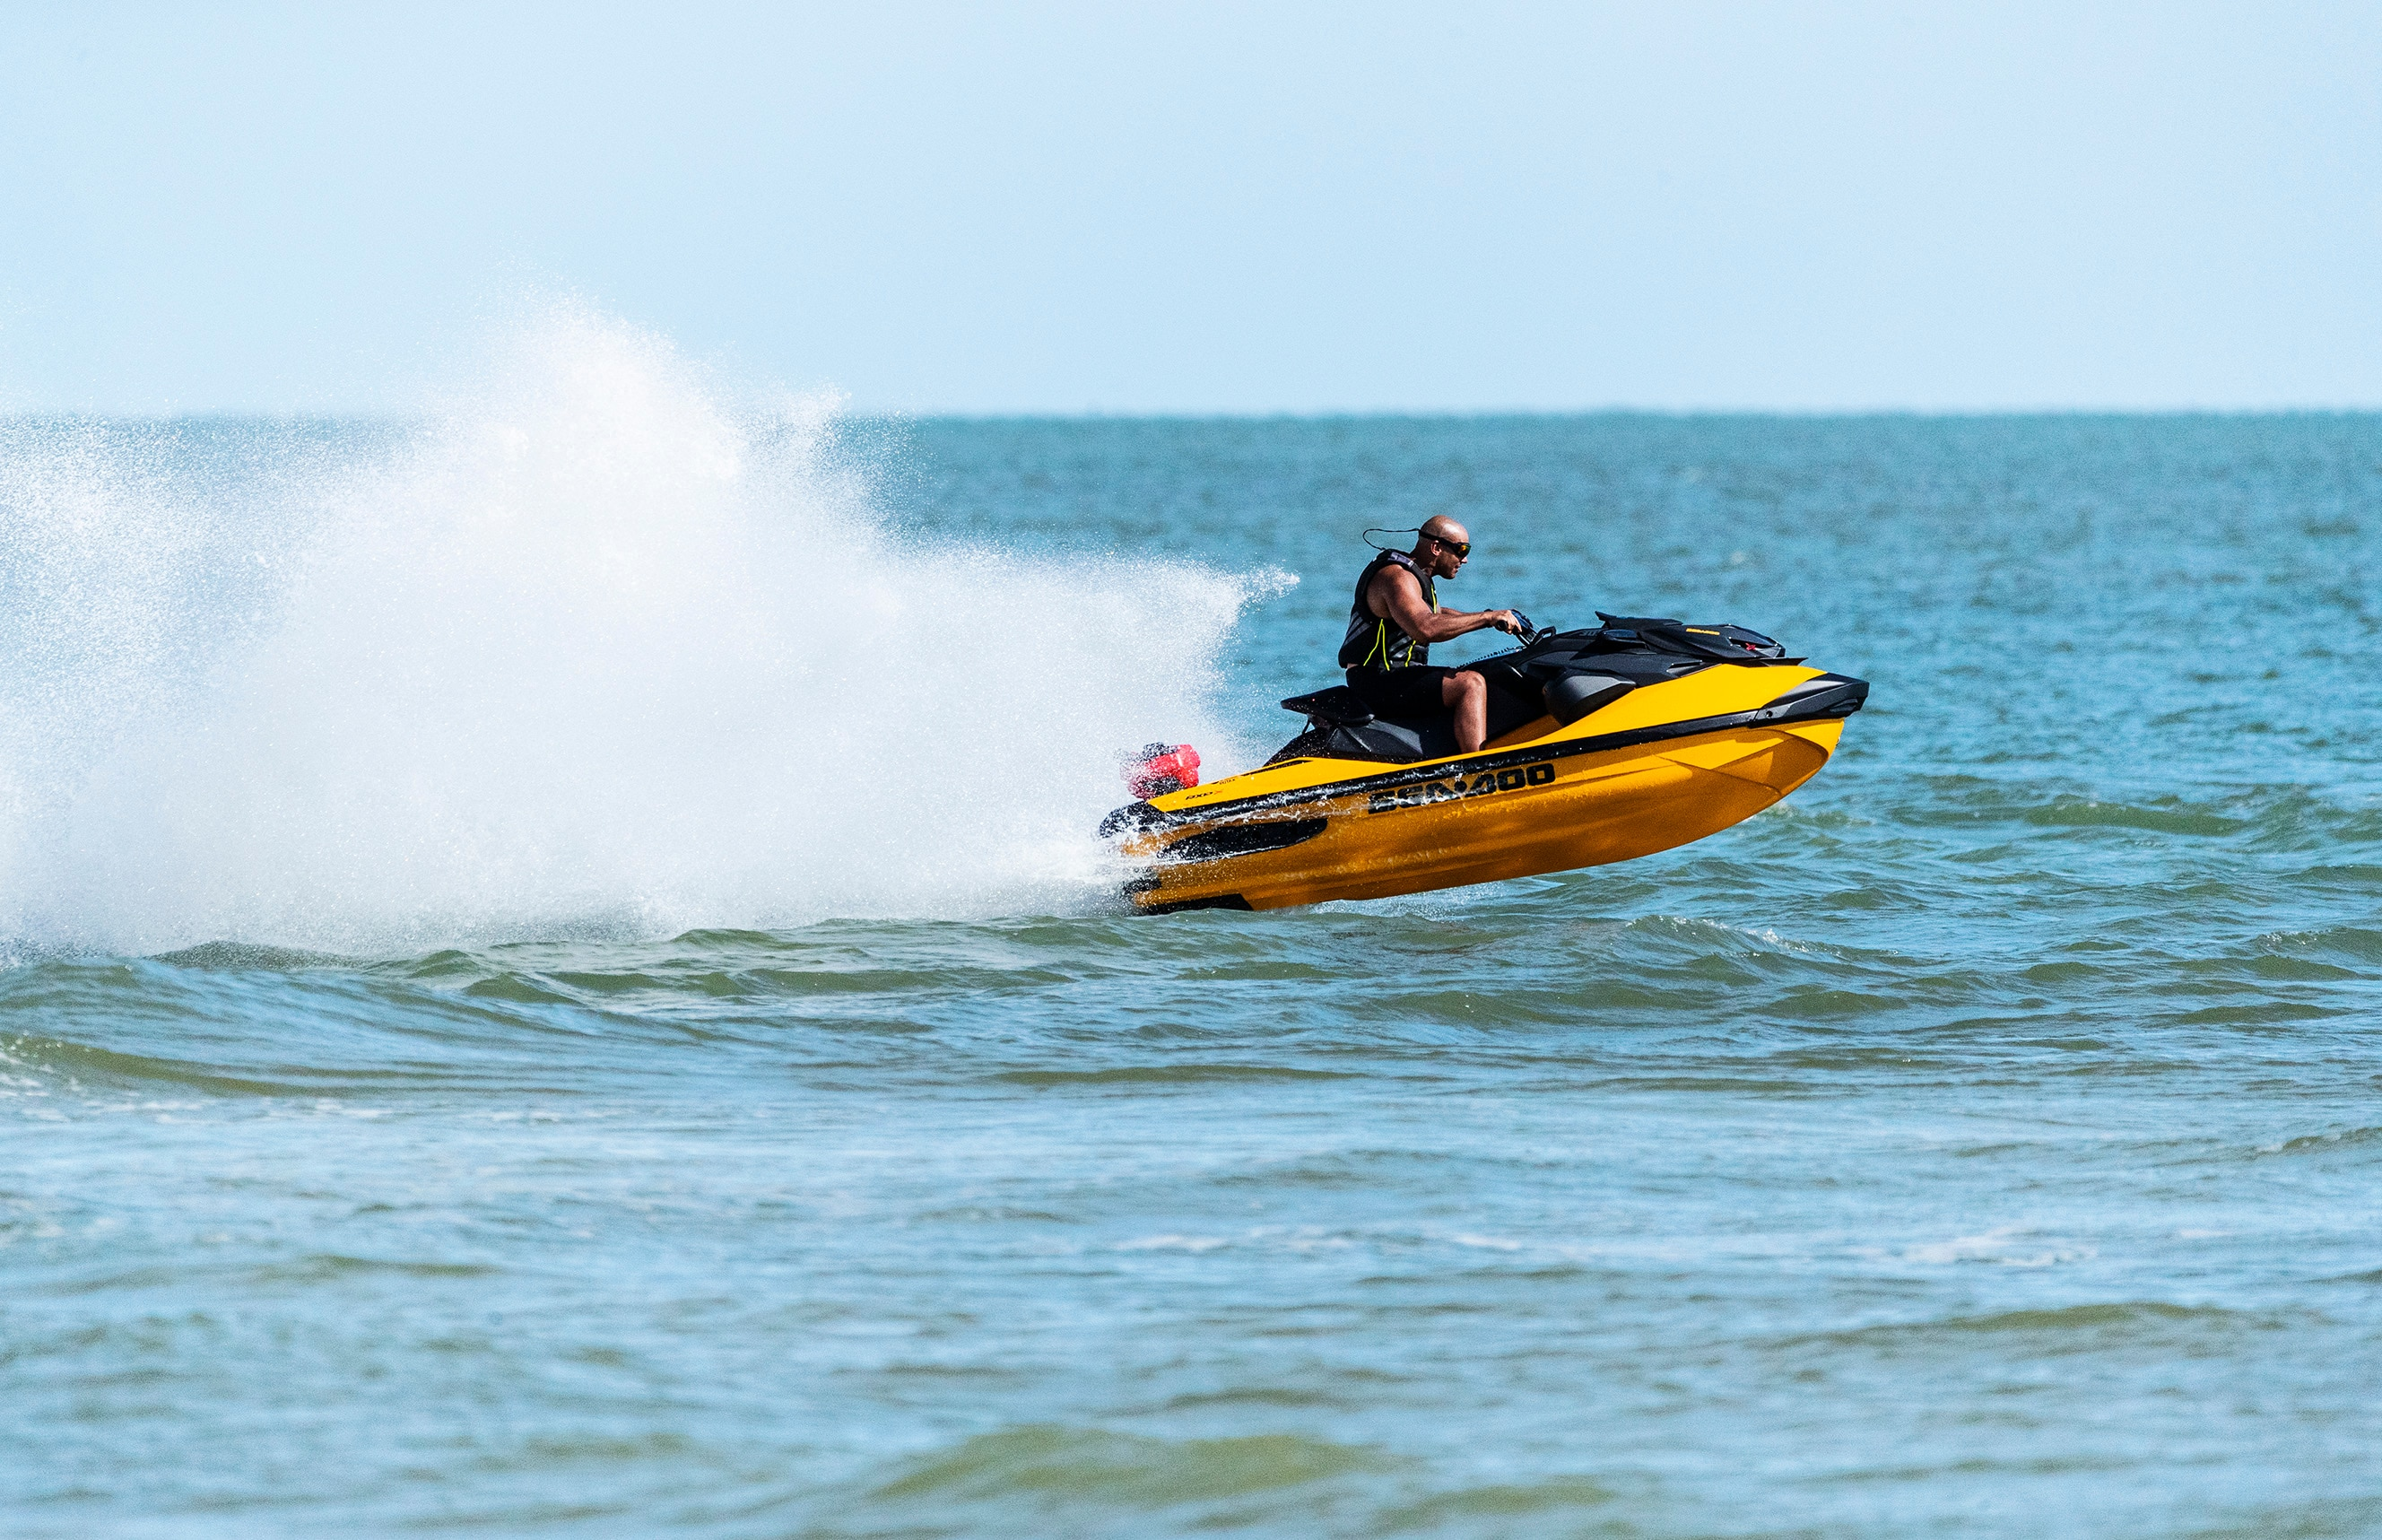 Man riding fast on a Sea-Doo RXP-X